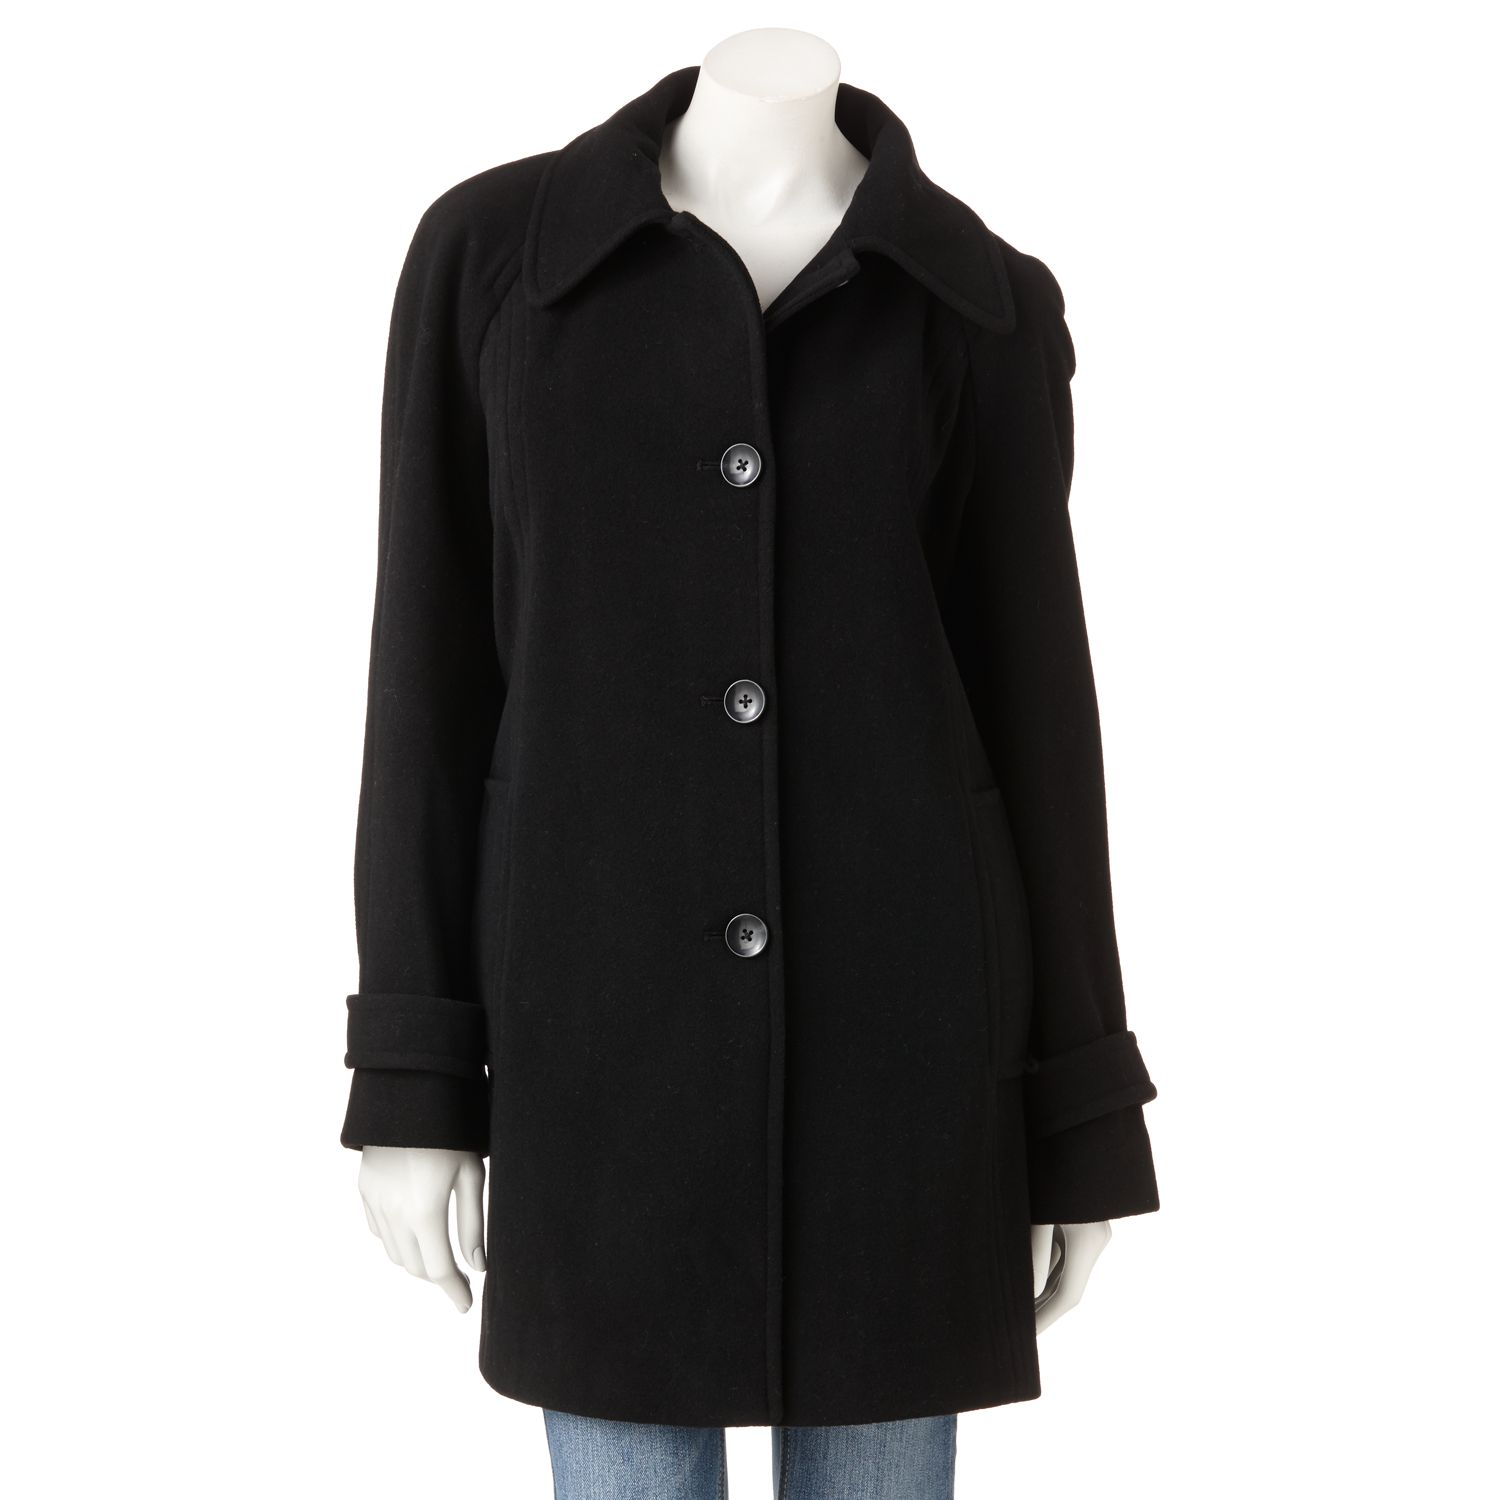 Towne by London Fog Wool-Blend Coat